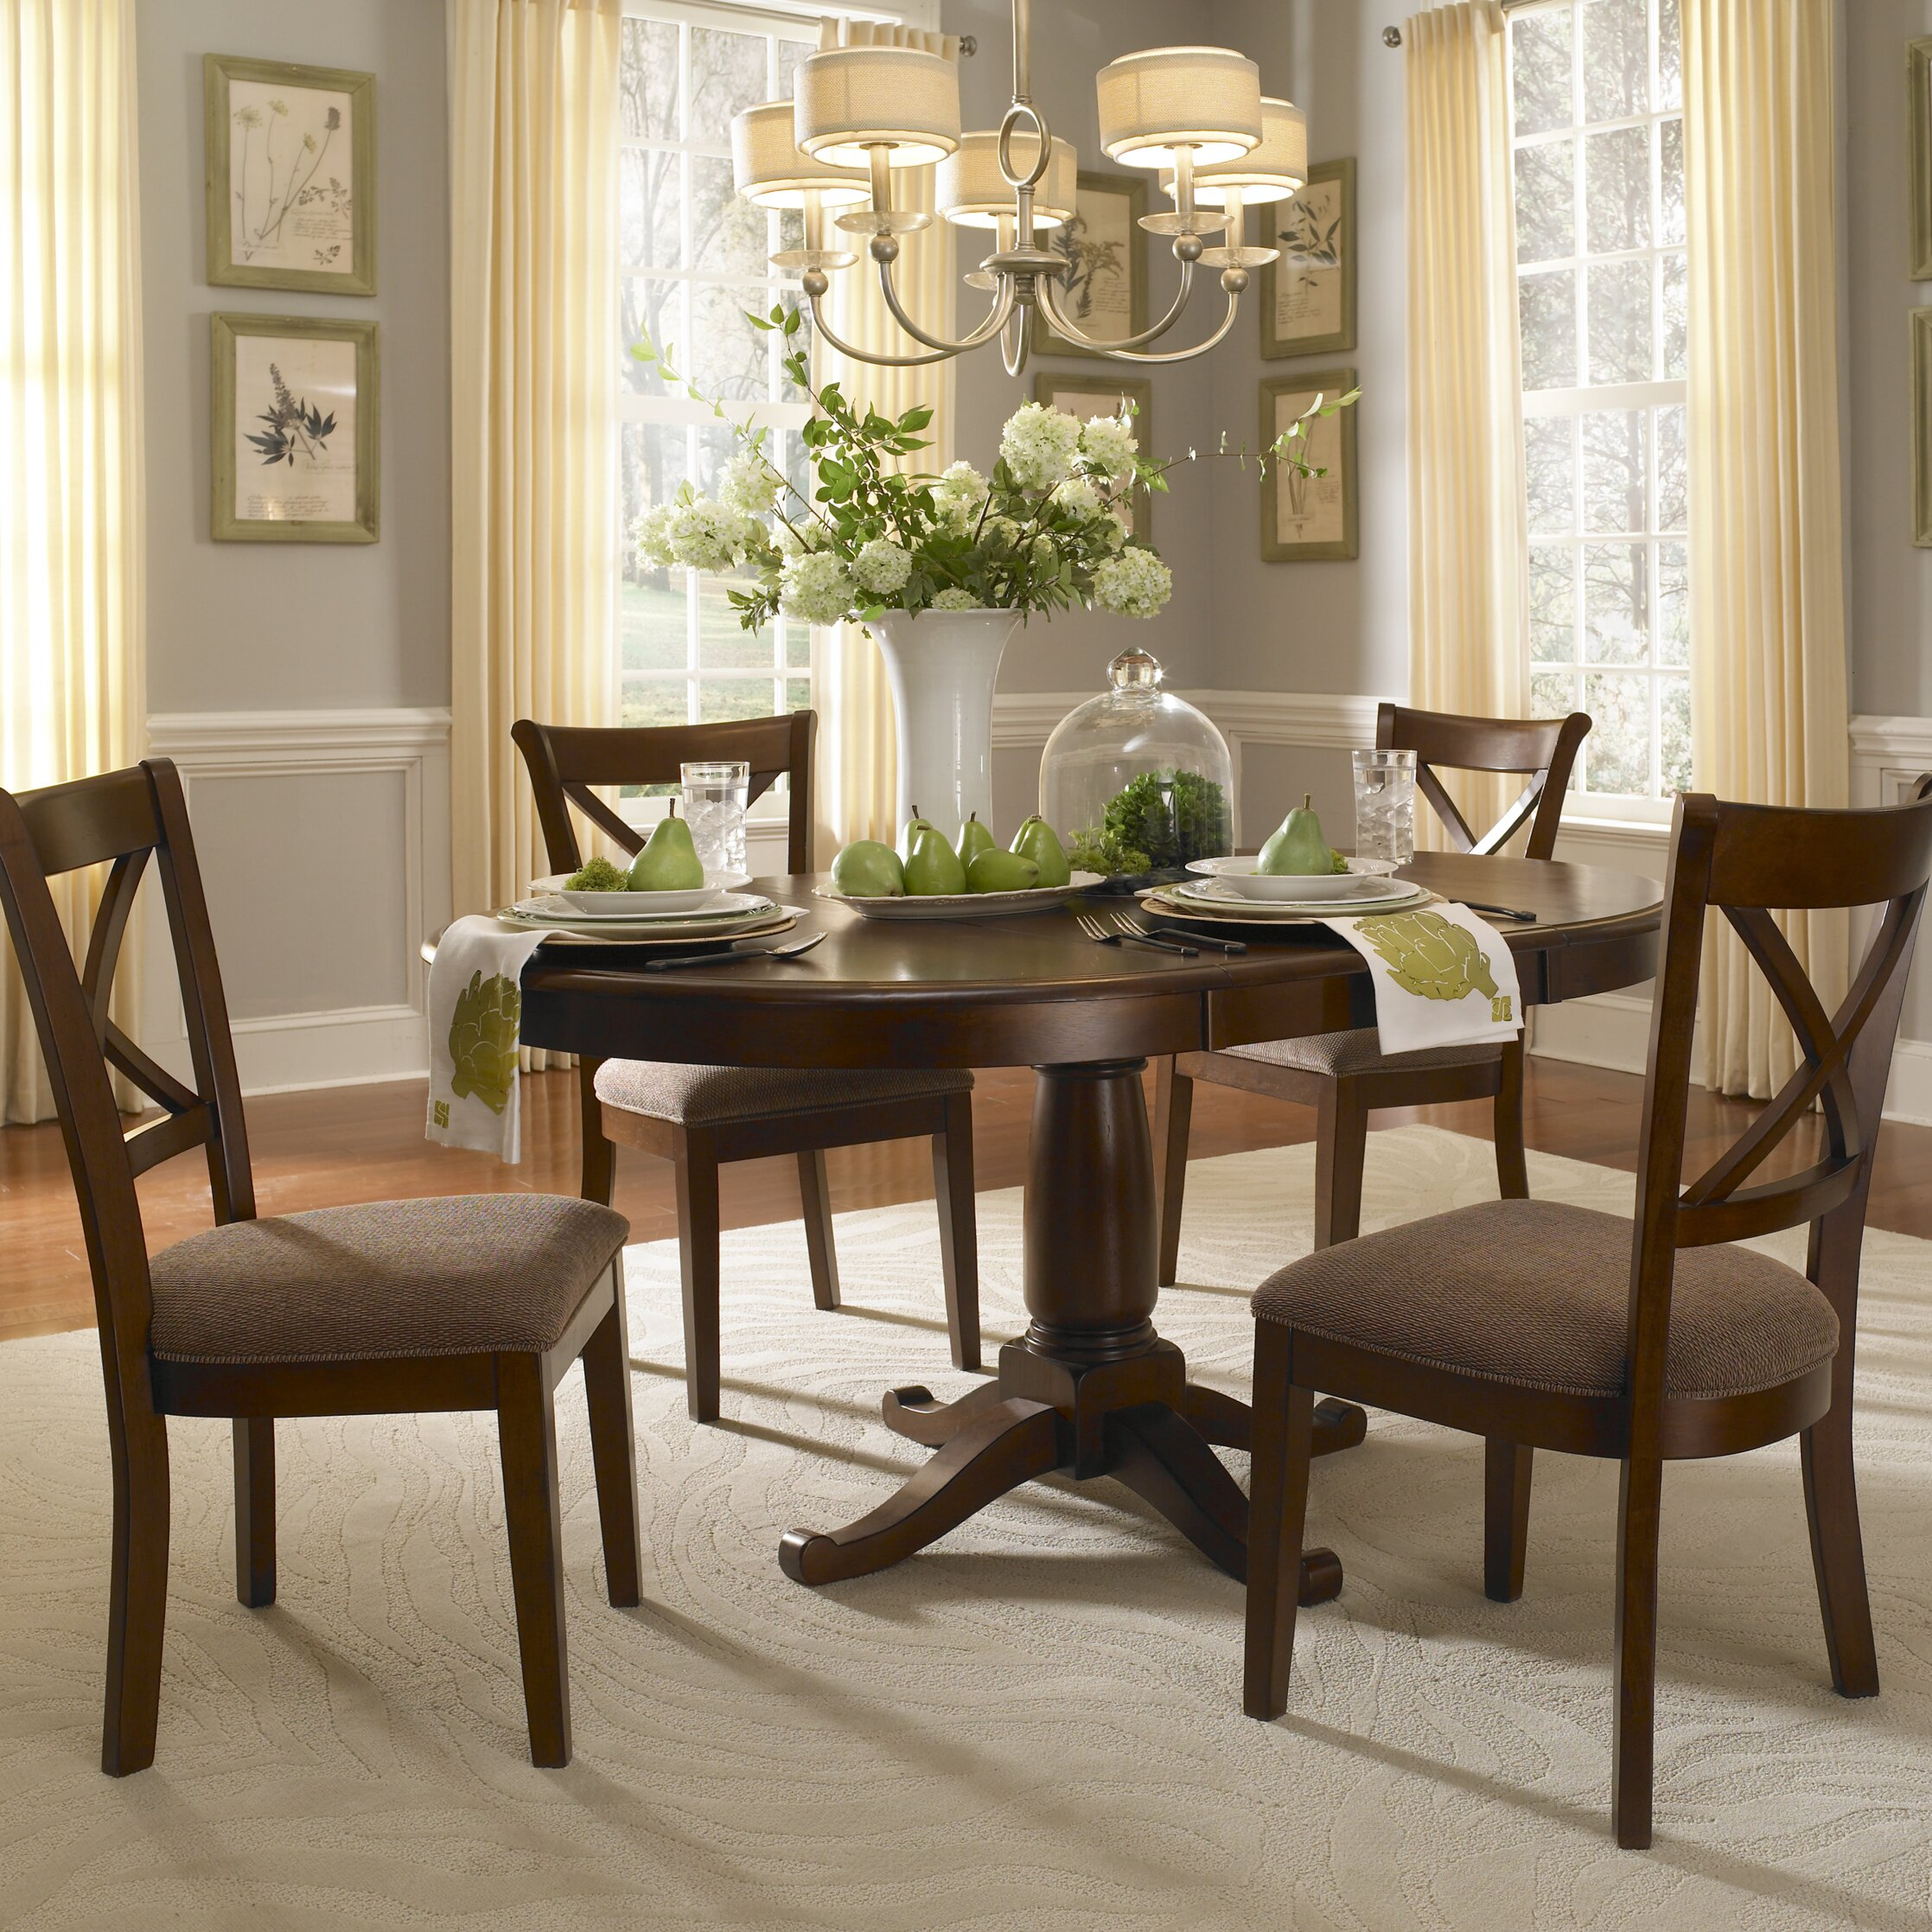 Darby Home Co Kiantone Extendable Dining Table amp Reviews  : Darby Home Co Kiantone Extendable Dining Table from www.wayfair.ca size 2235 x 2235 jpeg 804kB